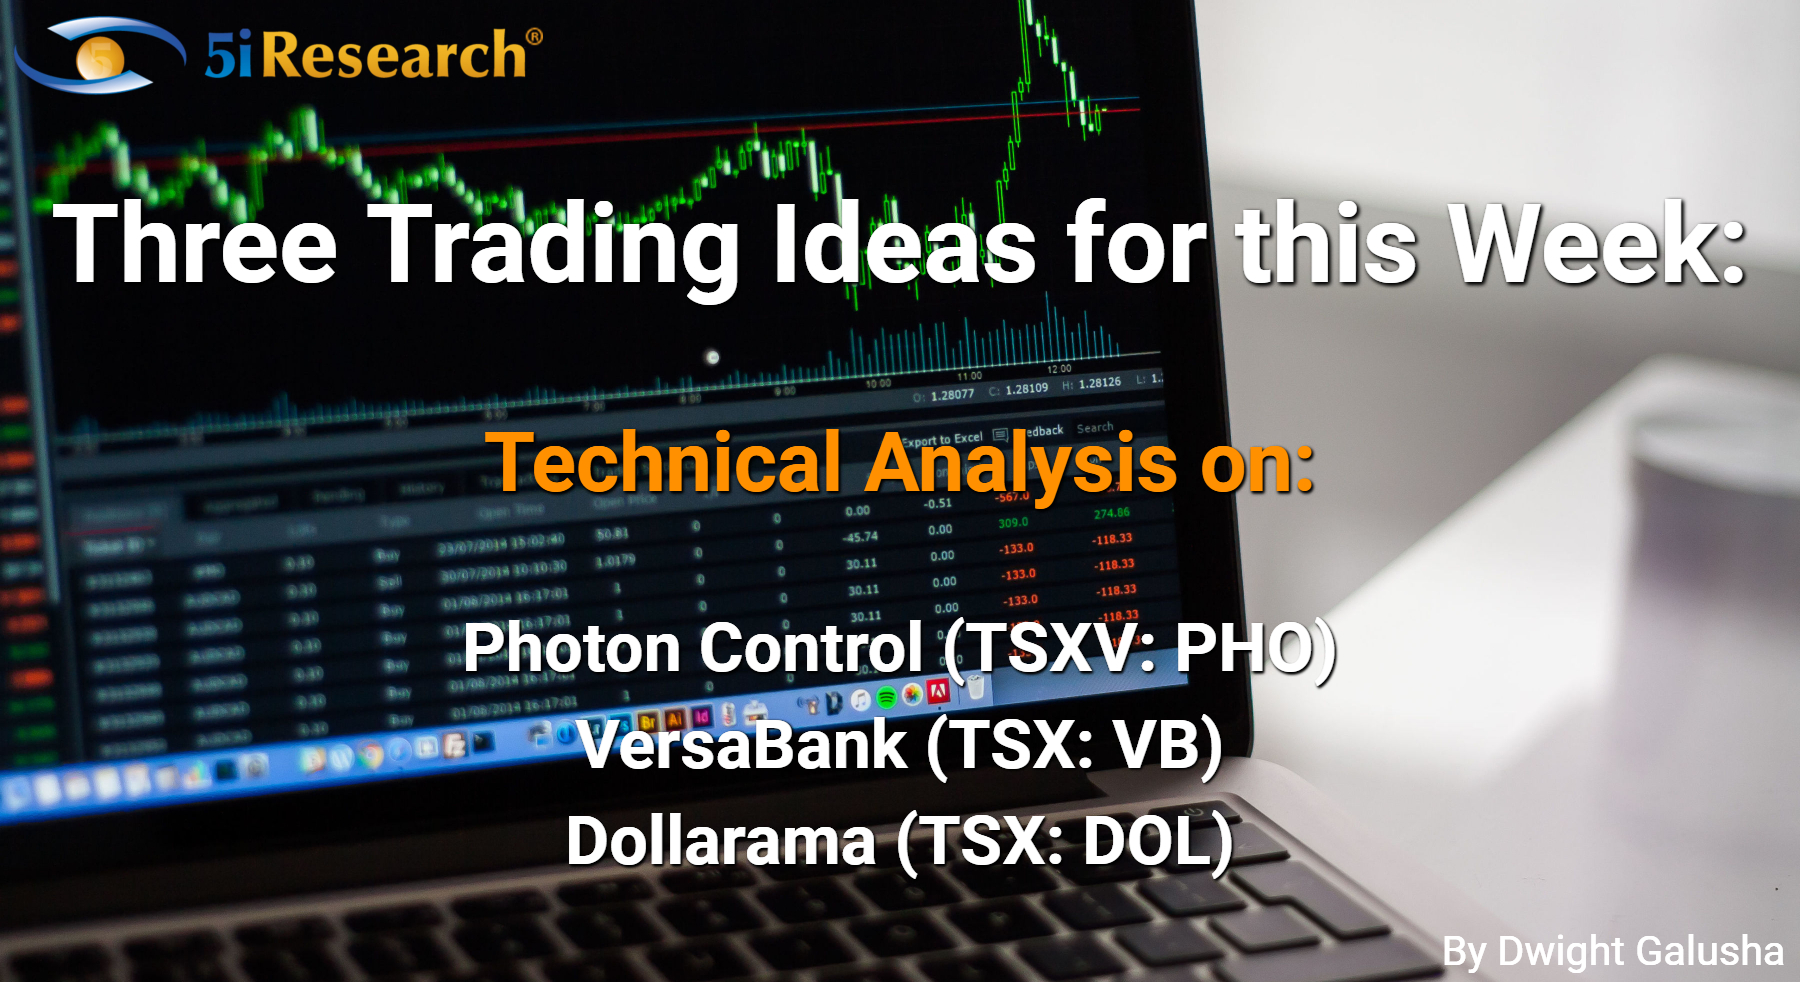 Technical Analysis on Photon Control, VersaBank, Dollarama